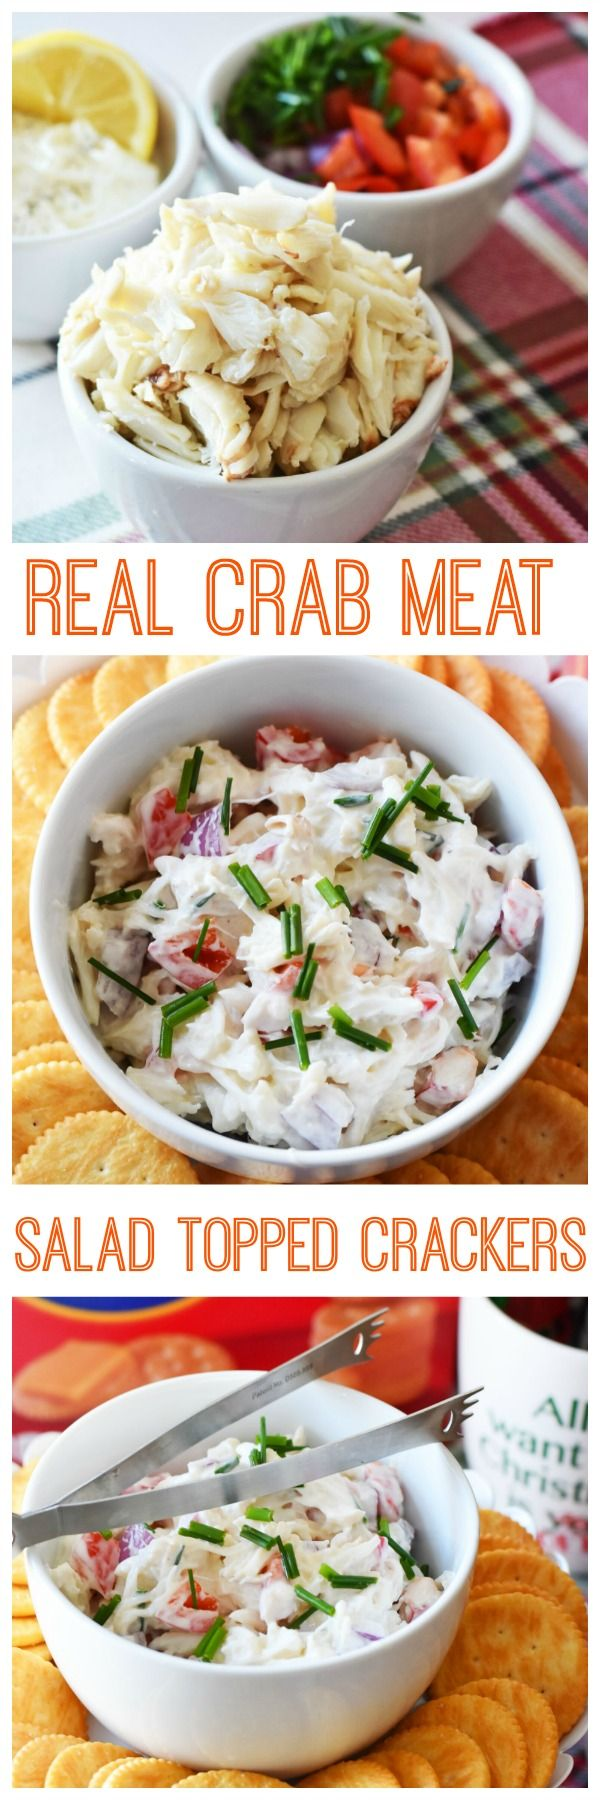 Quick Crab Meat Salad Cracker Appetizer. A fresh, tasty and quick to make savory appetizer that can be paired with crackers. This crab meat is ideal!